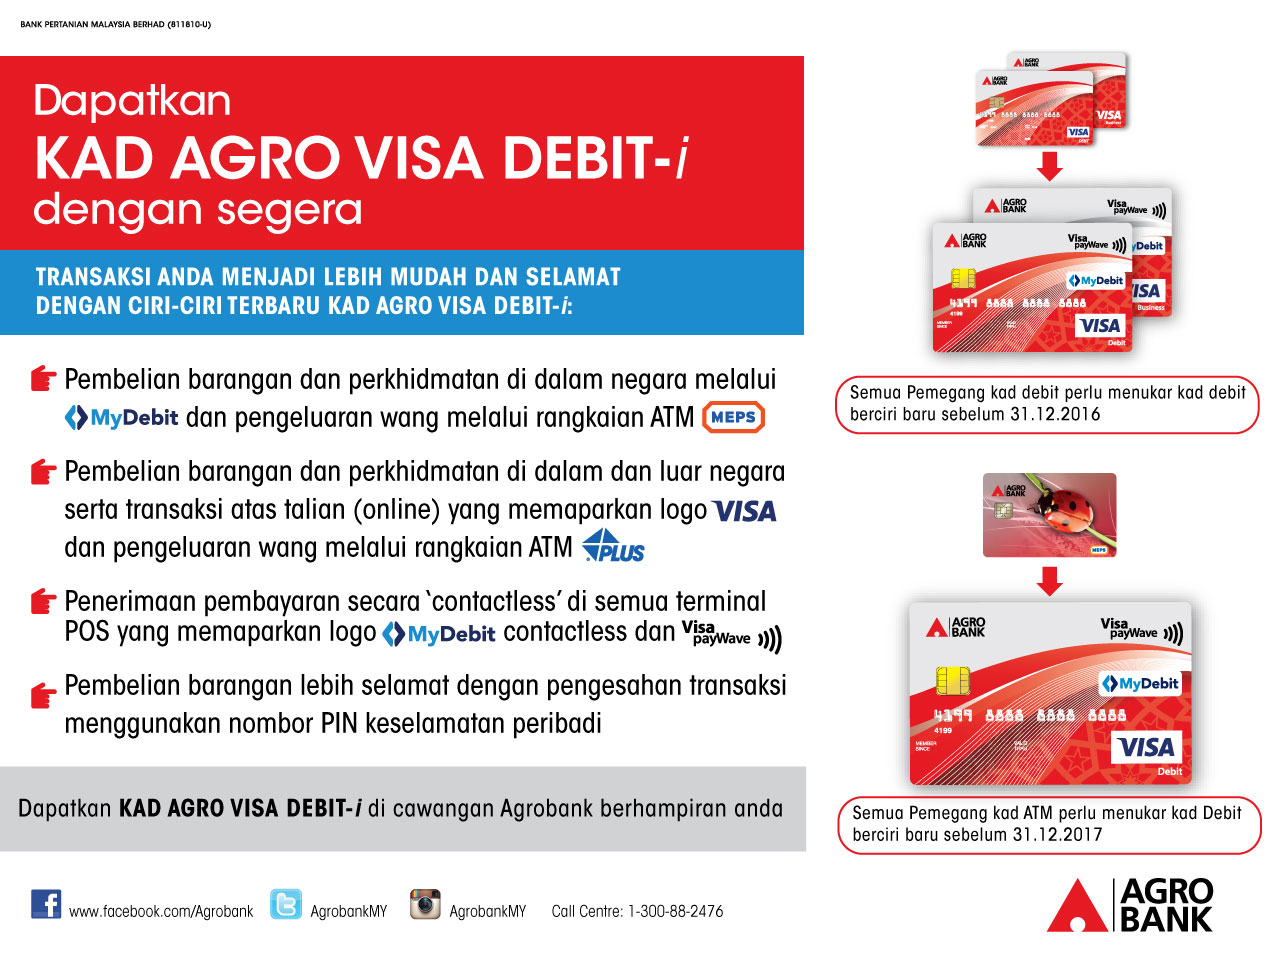 Agro visa business debit card i agrobank agro visa business debit card i the card that balances your business and lifestyle needs both domestic and internationally it helps business thrive with a magicingreecefo Image collections